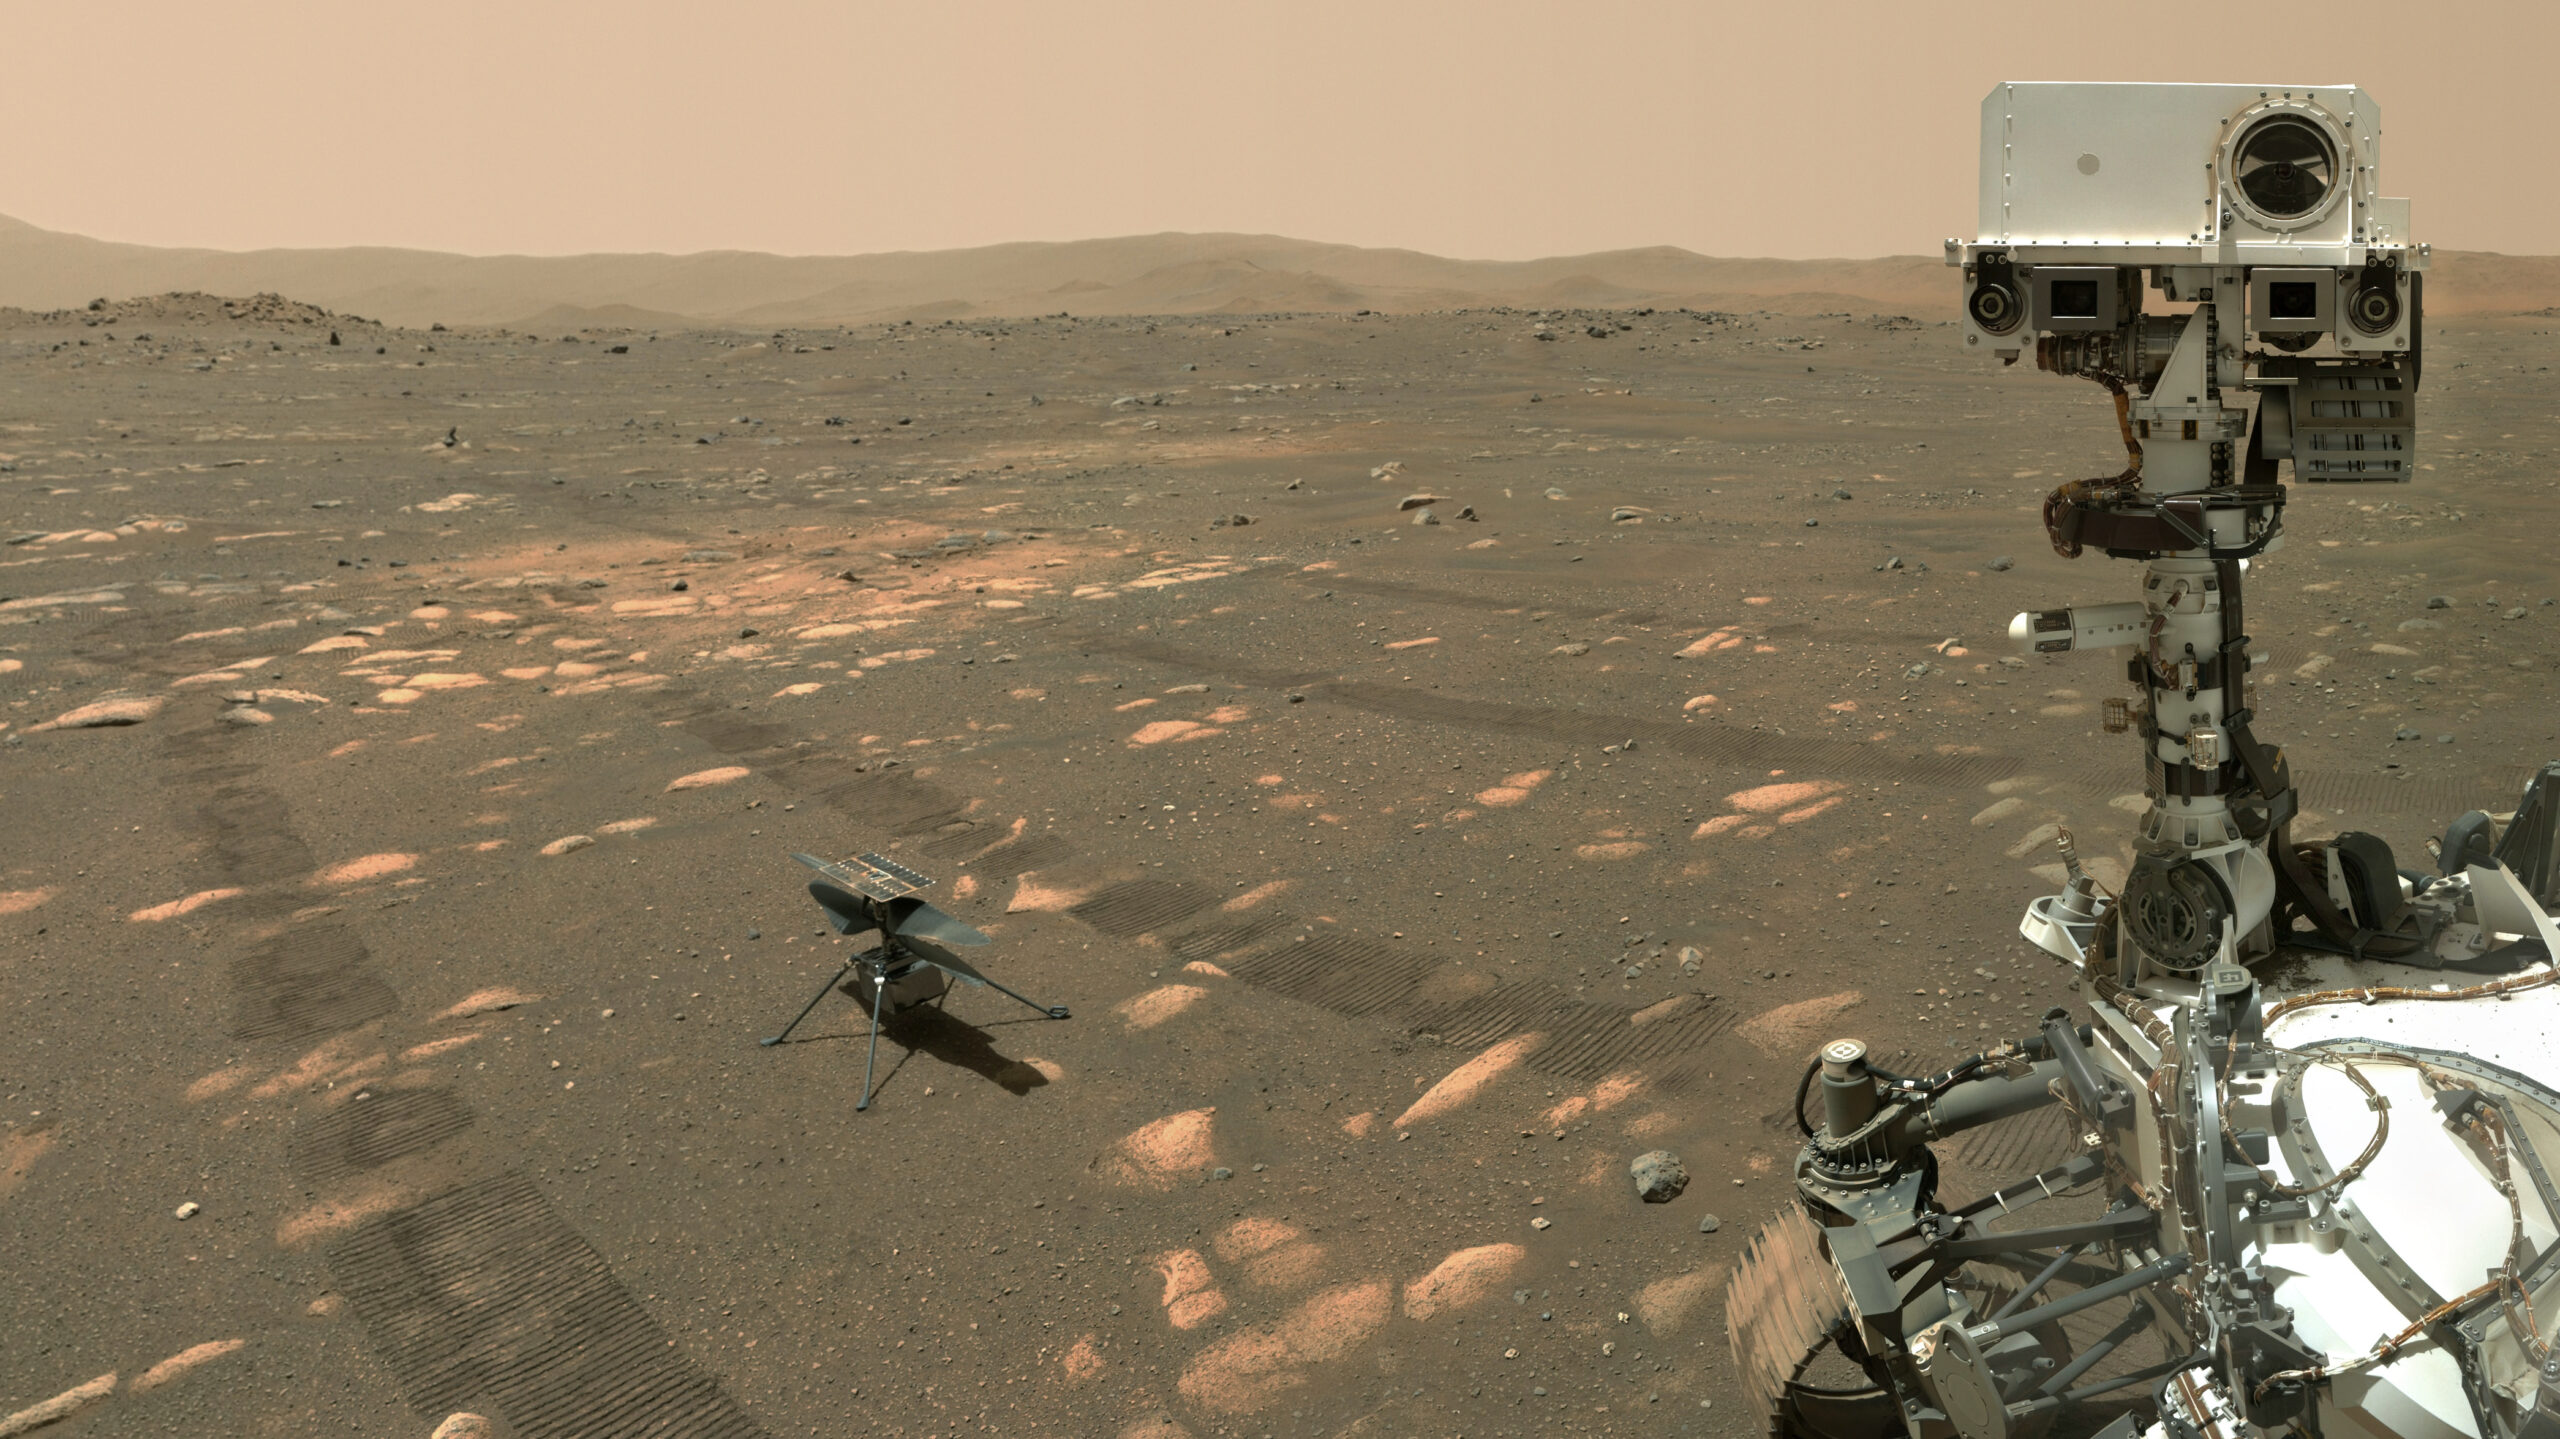 Perseverance and Ingenuity on Mars